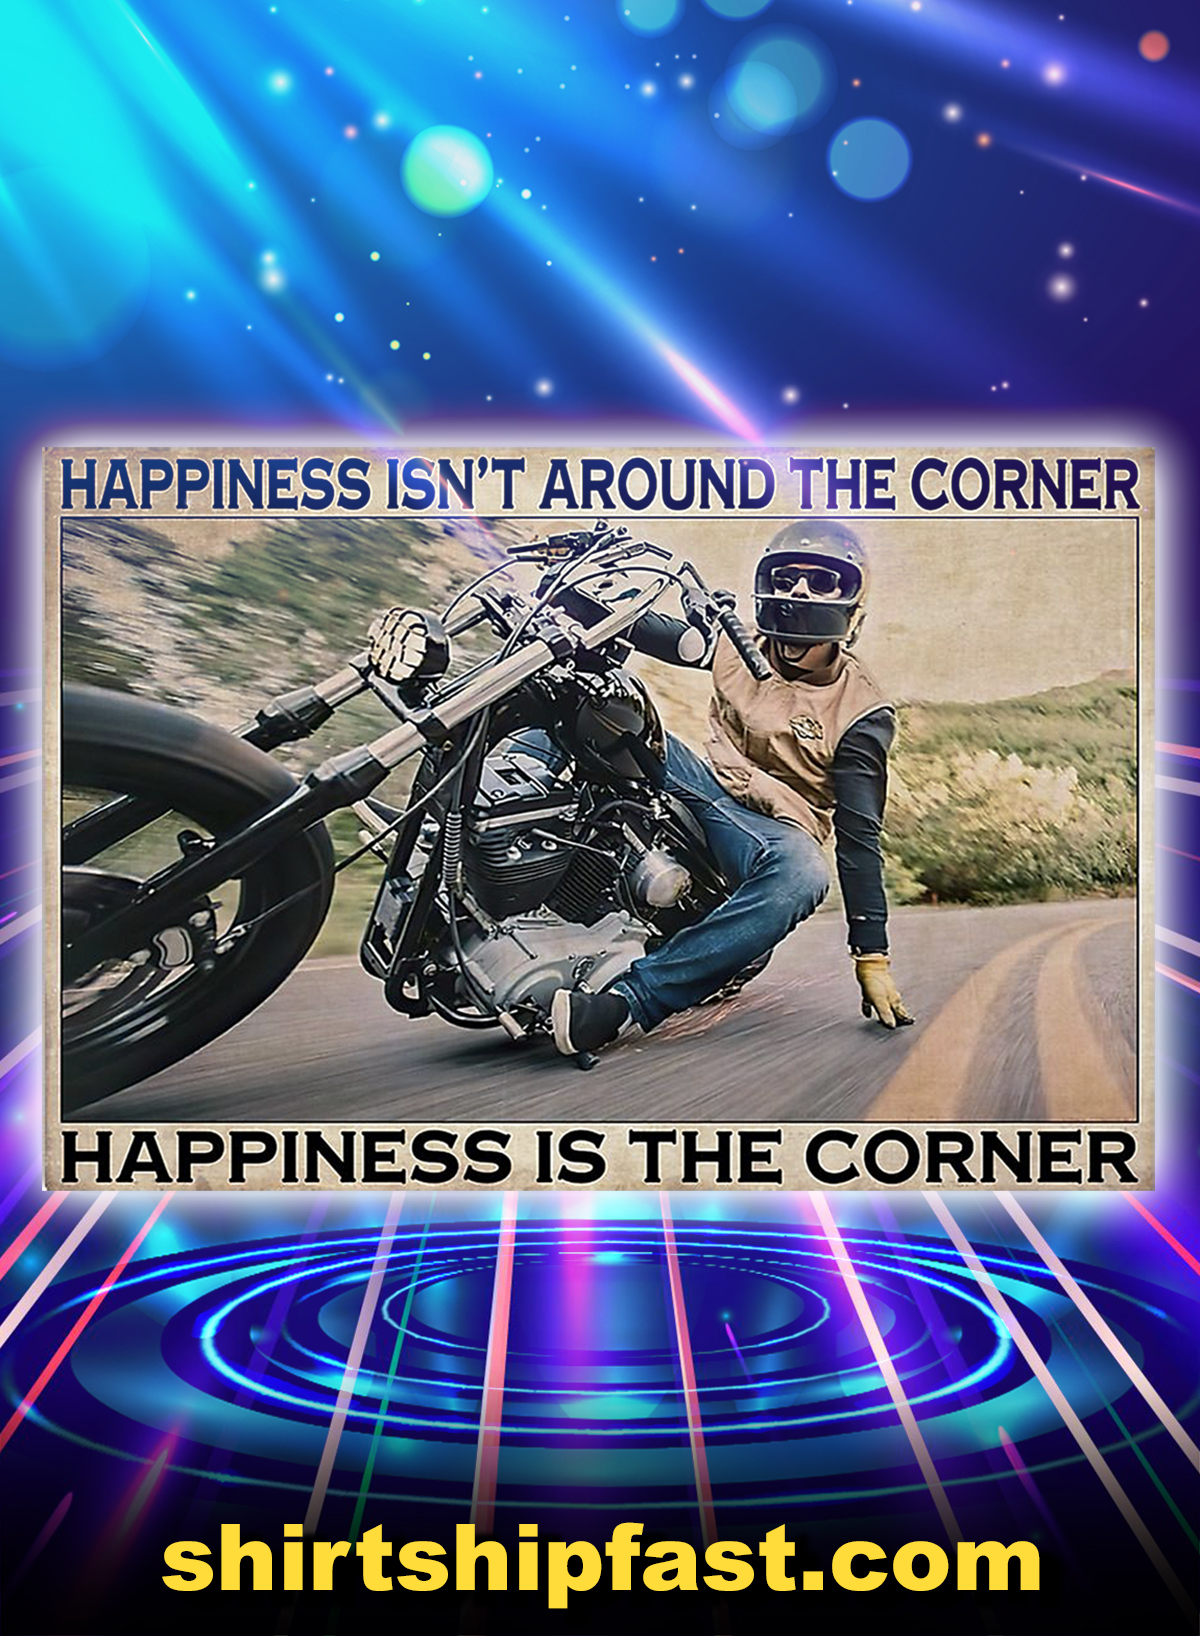 Corner Motorcycle happiness isn't around the corner poster - A1